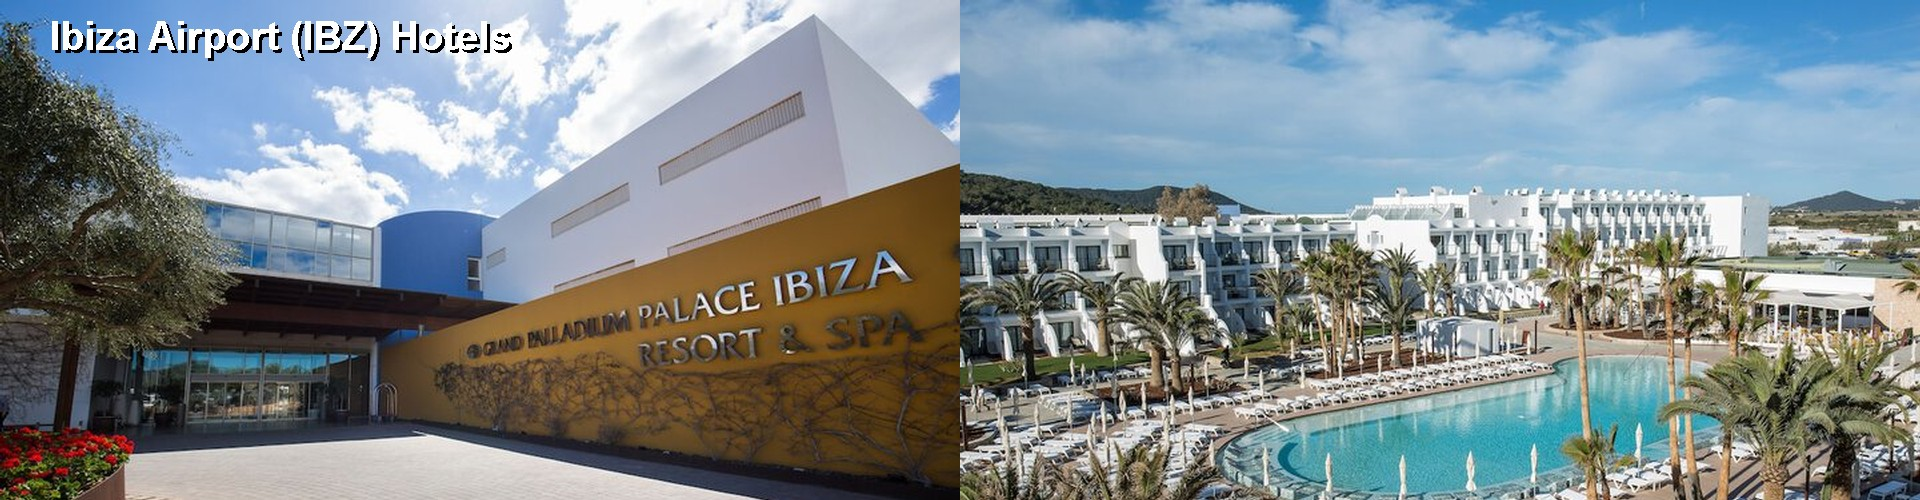 5 Best Hotels near Ibiza Airport (IBZ)